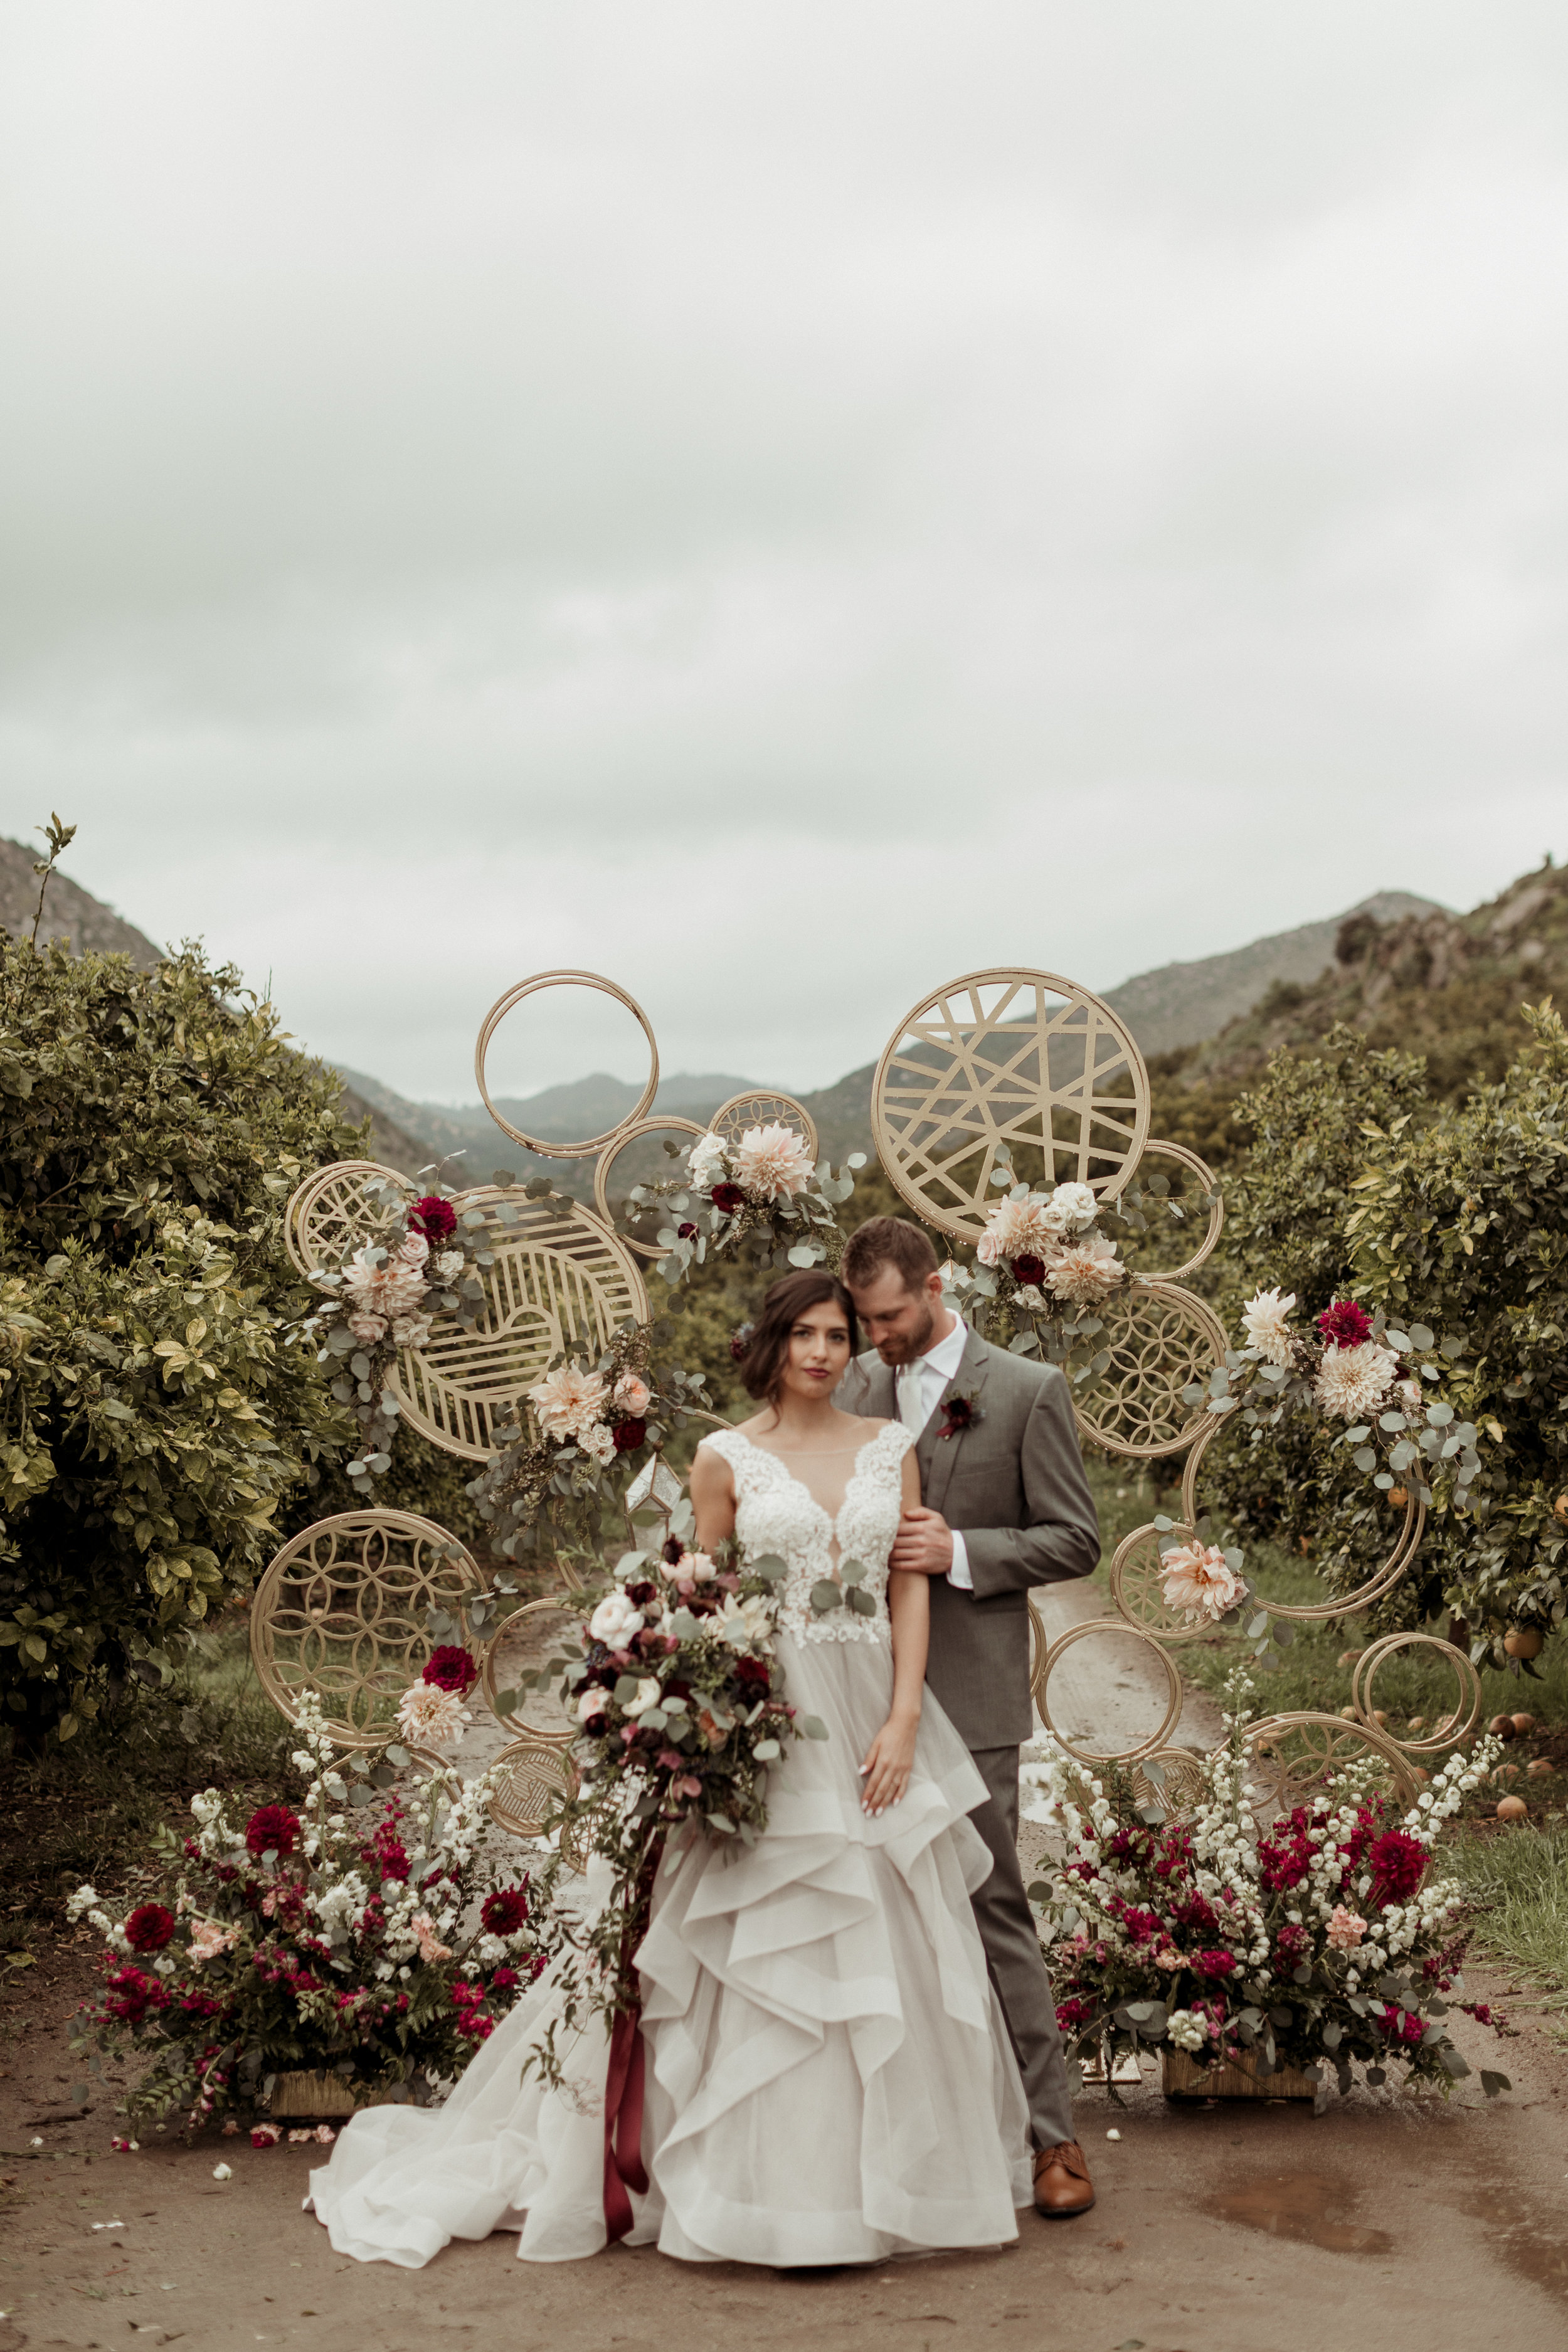 Ranch Guejito Winery Styled Shoot - View Gallery